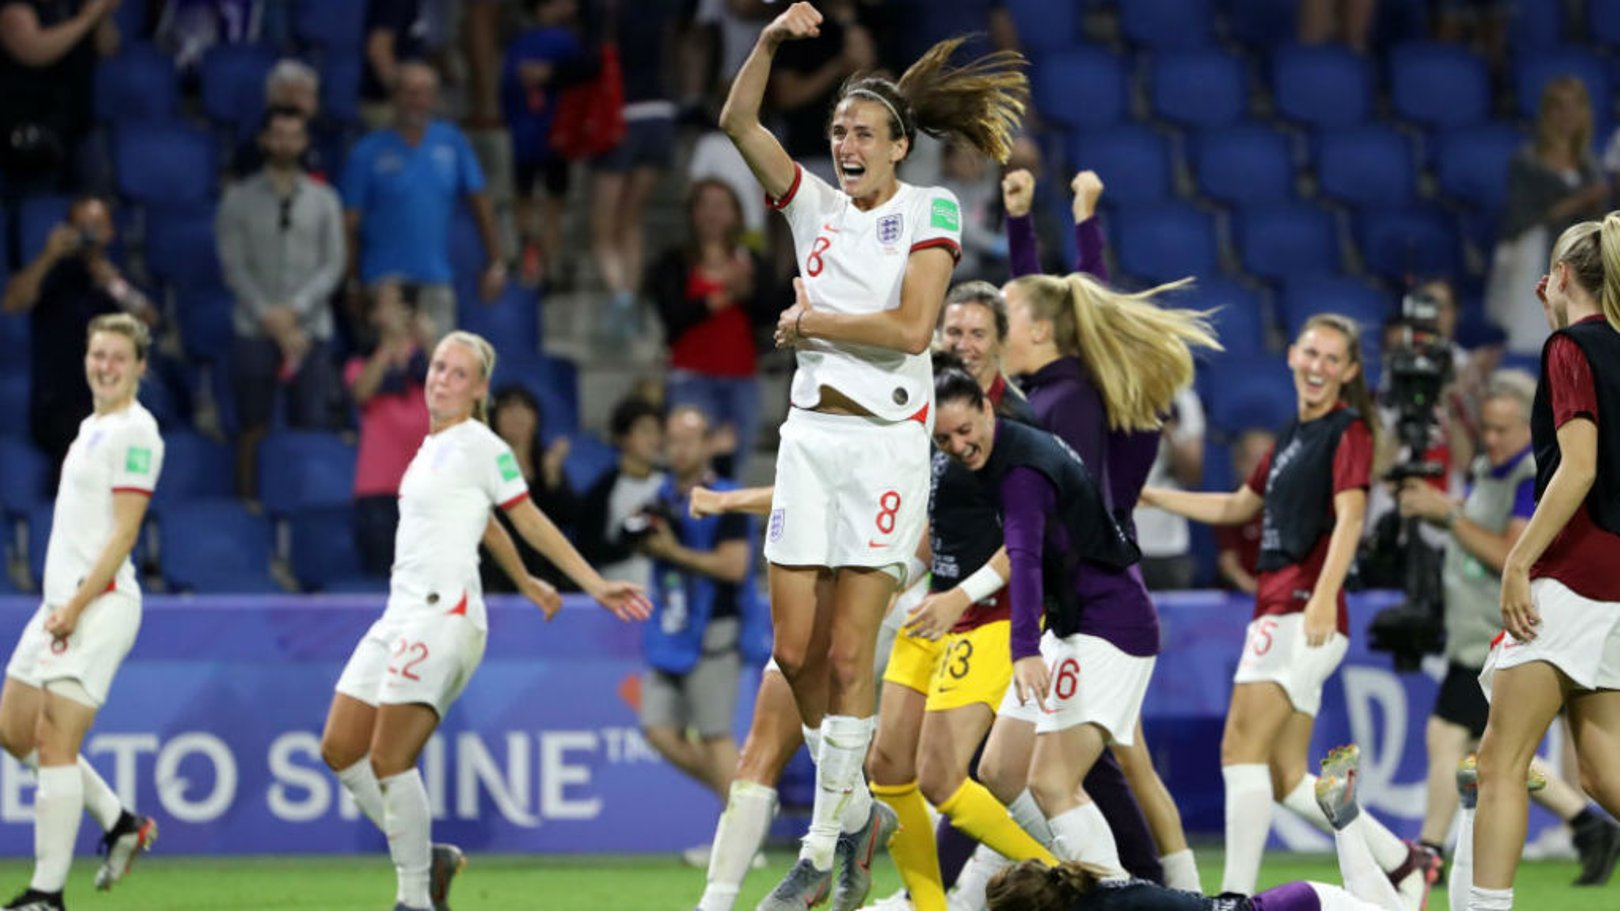 JUMPING FOR JOY: Jill Scott can't contains her delight as England celebrate after their 3-0 World Cup quarter-final win over Norway